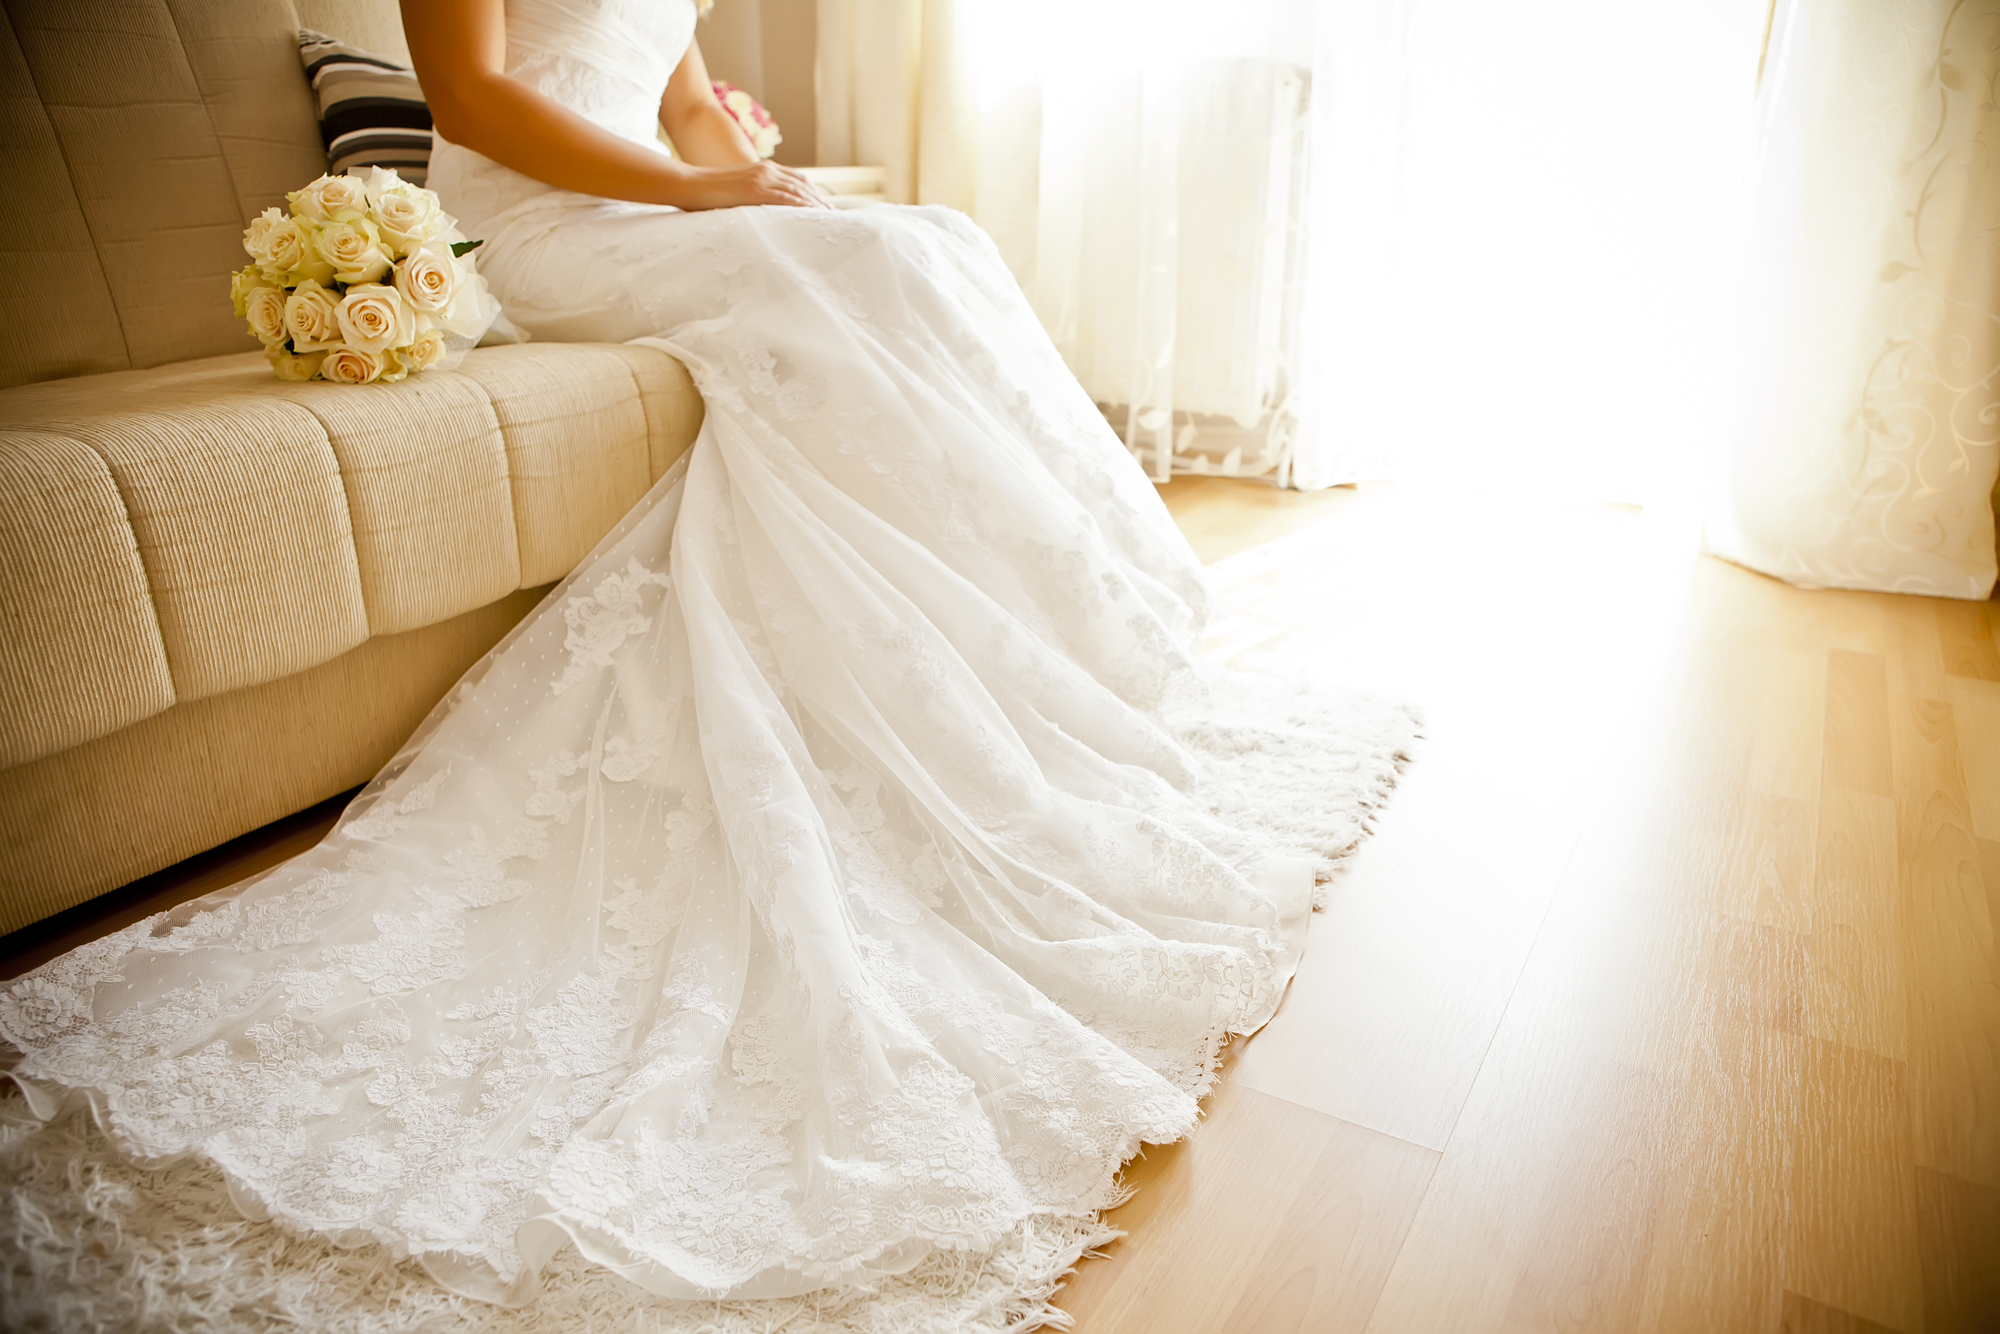 3 Common Mistakes to Avoid When Shopping for a Wedding Dress